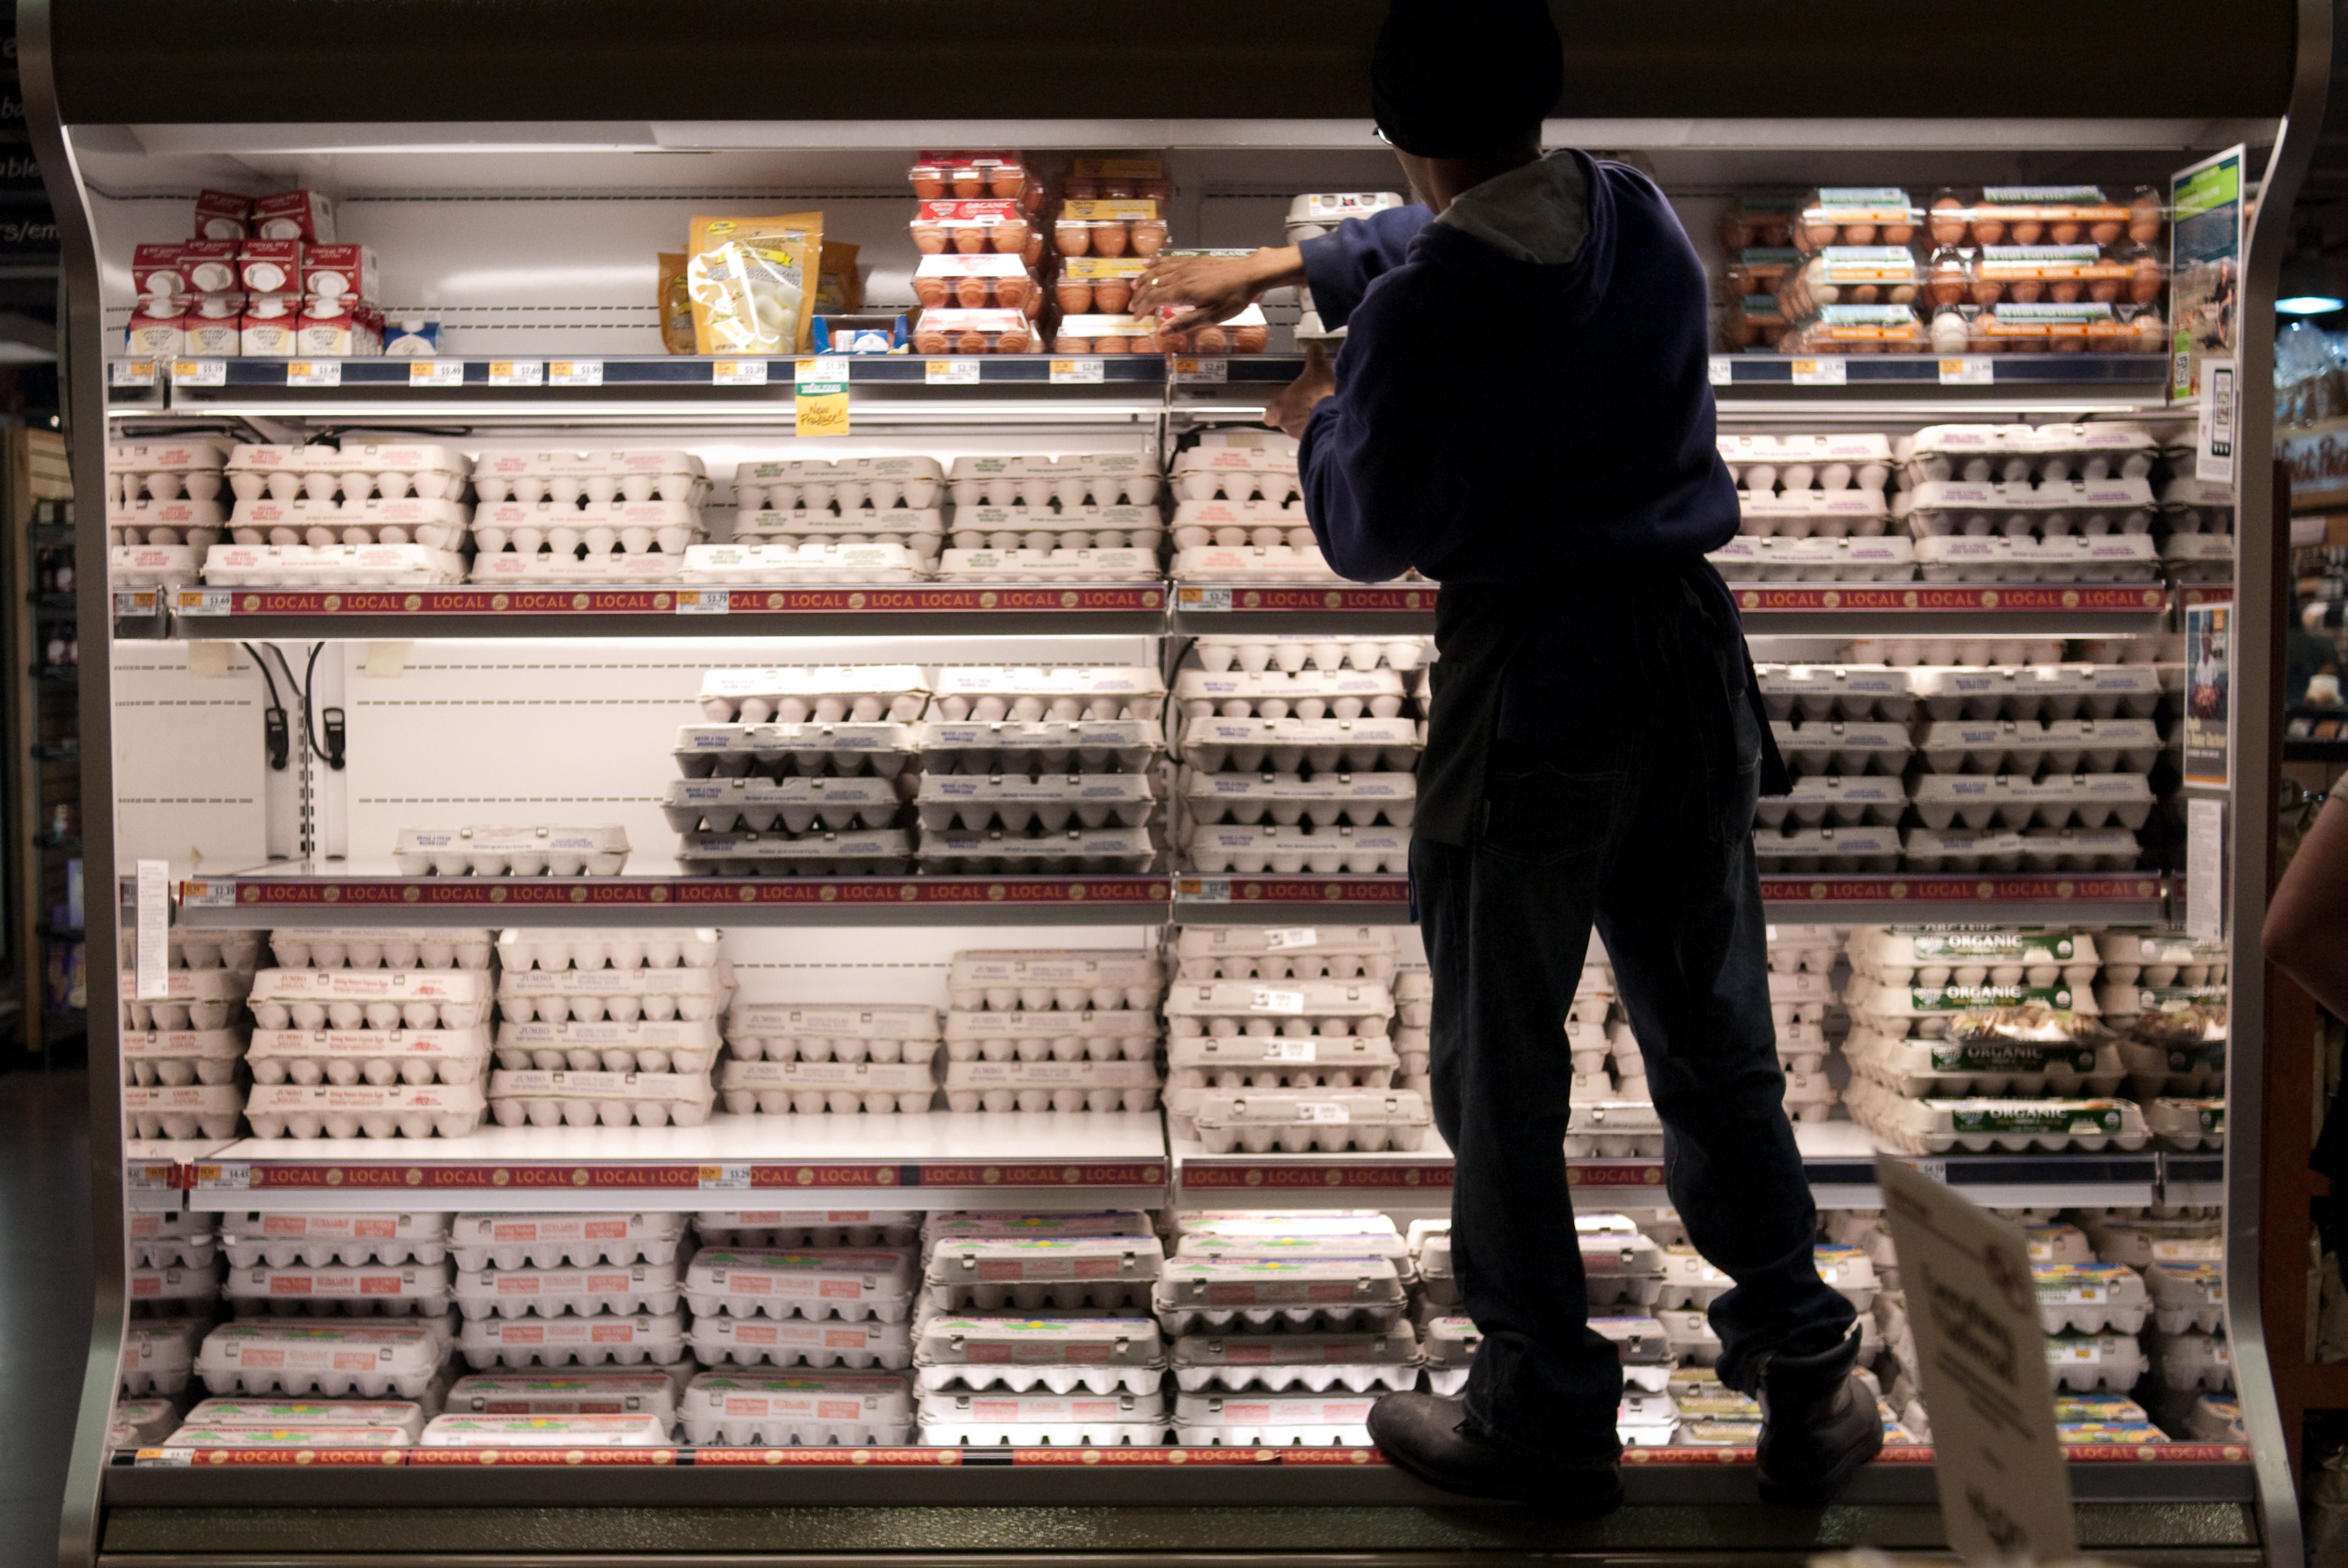 Grocery store worker stocking egg cartons